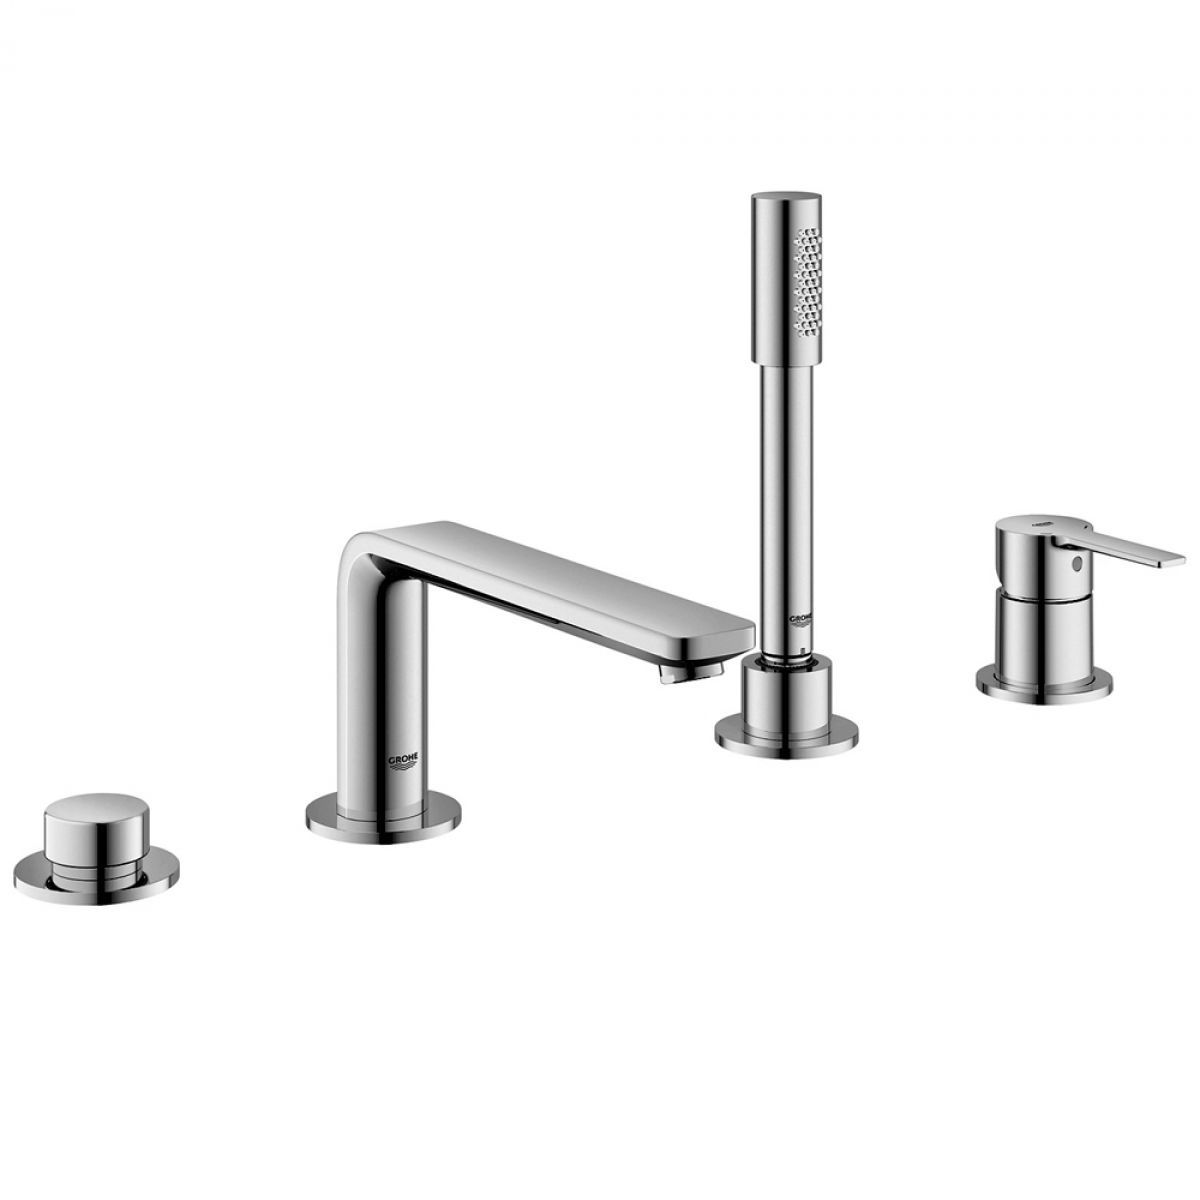 Grohe Lineare 4-hole Bath Mixer with Shower Handset : UK Bathrooms